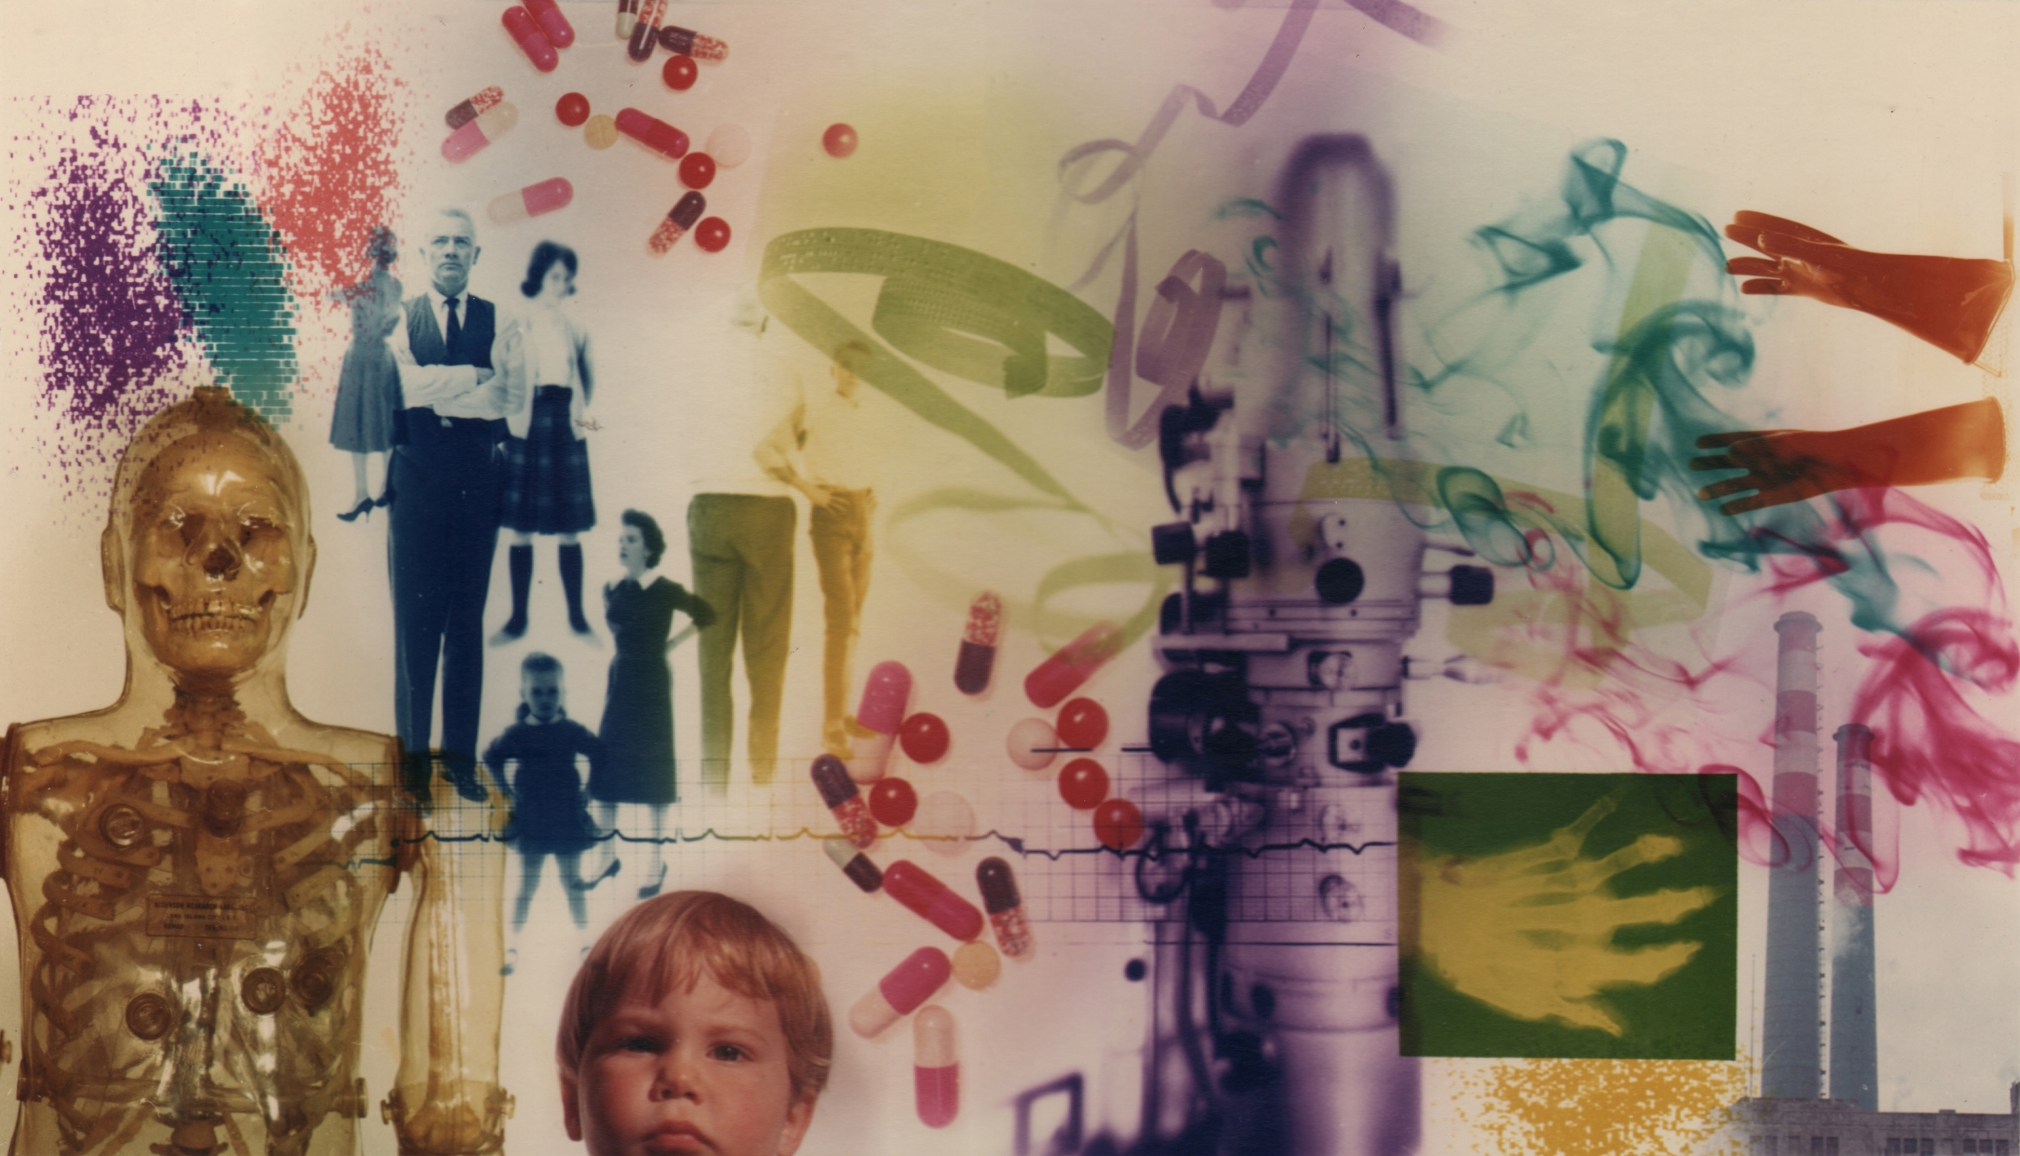 22. David Attie, Untitled (Pharmaceutical Montage), c. 1970. Composite color photo featuring a model skeleton, various pills, adults and children, wisps of smoke, gloves, and more.